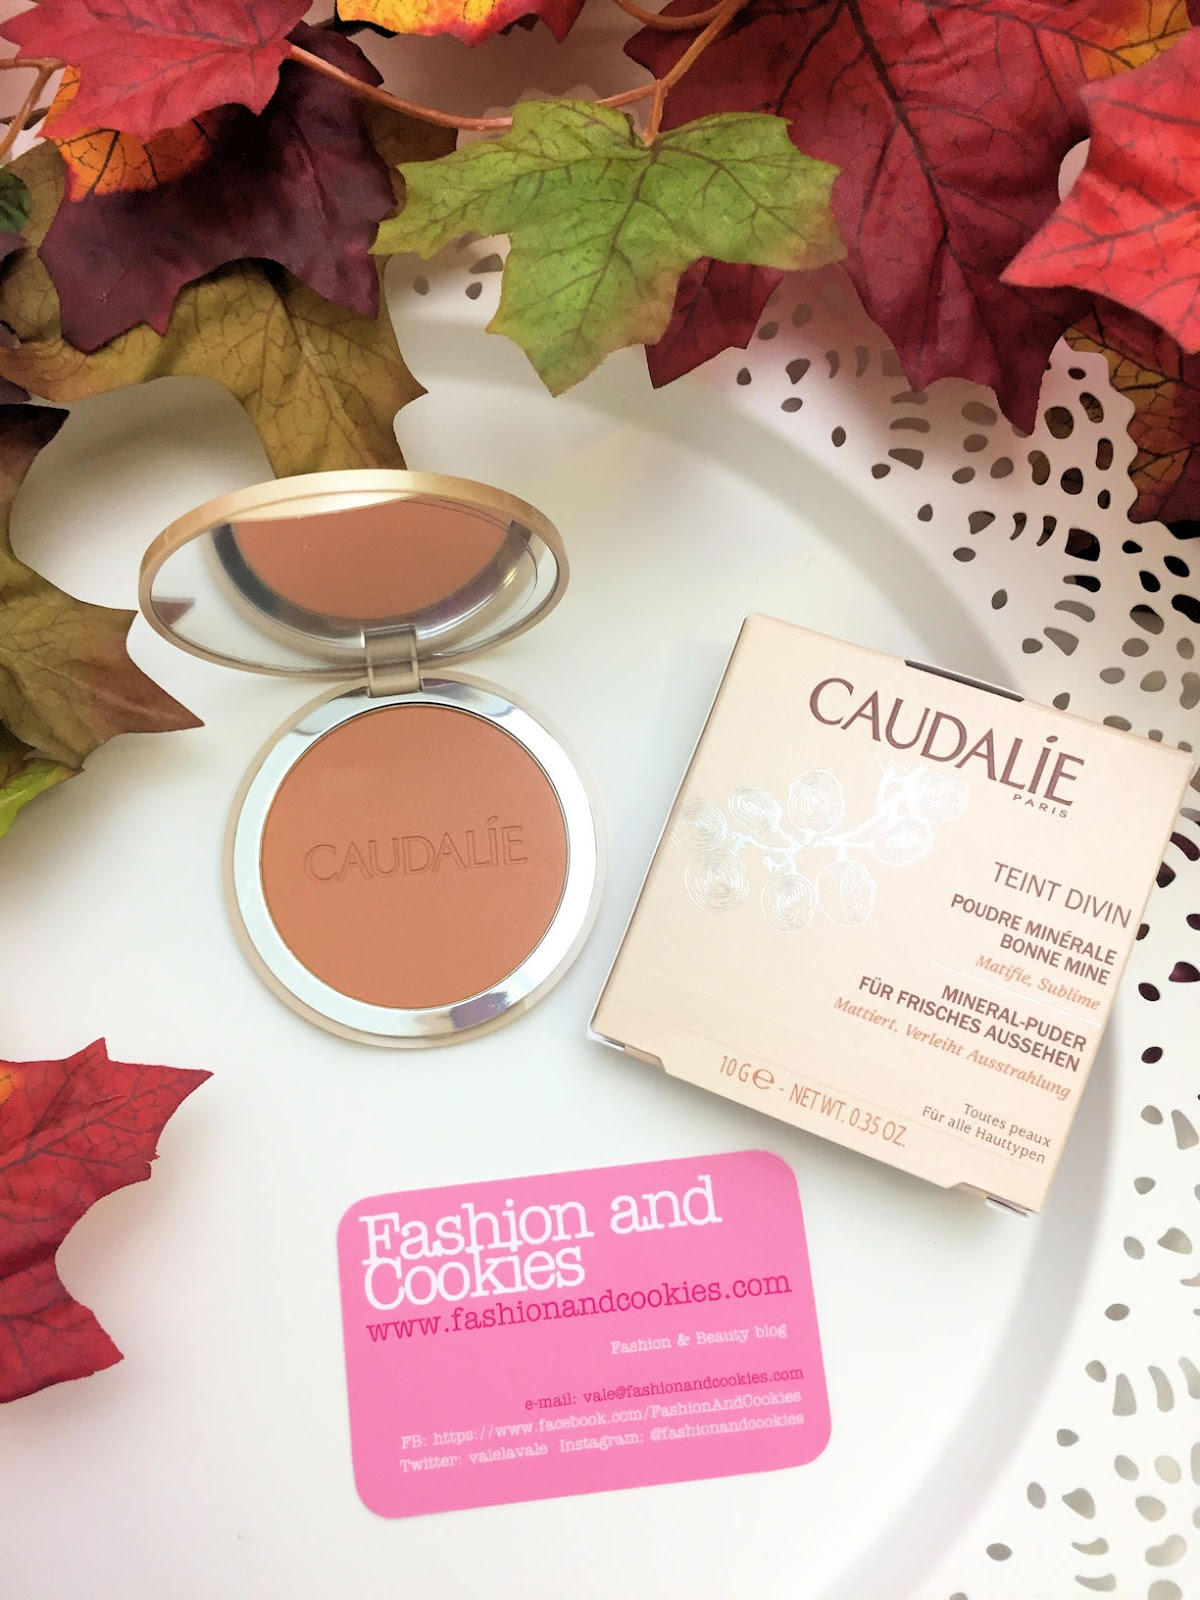 Come mantenere un colorito sano tutto l'anno? Caudalie Poudre Minérale Bonne Mine su Fashion and Cookies beauty blog, beauty blogger